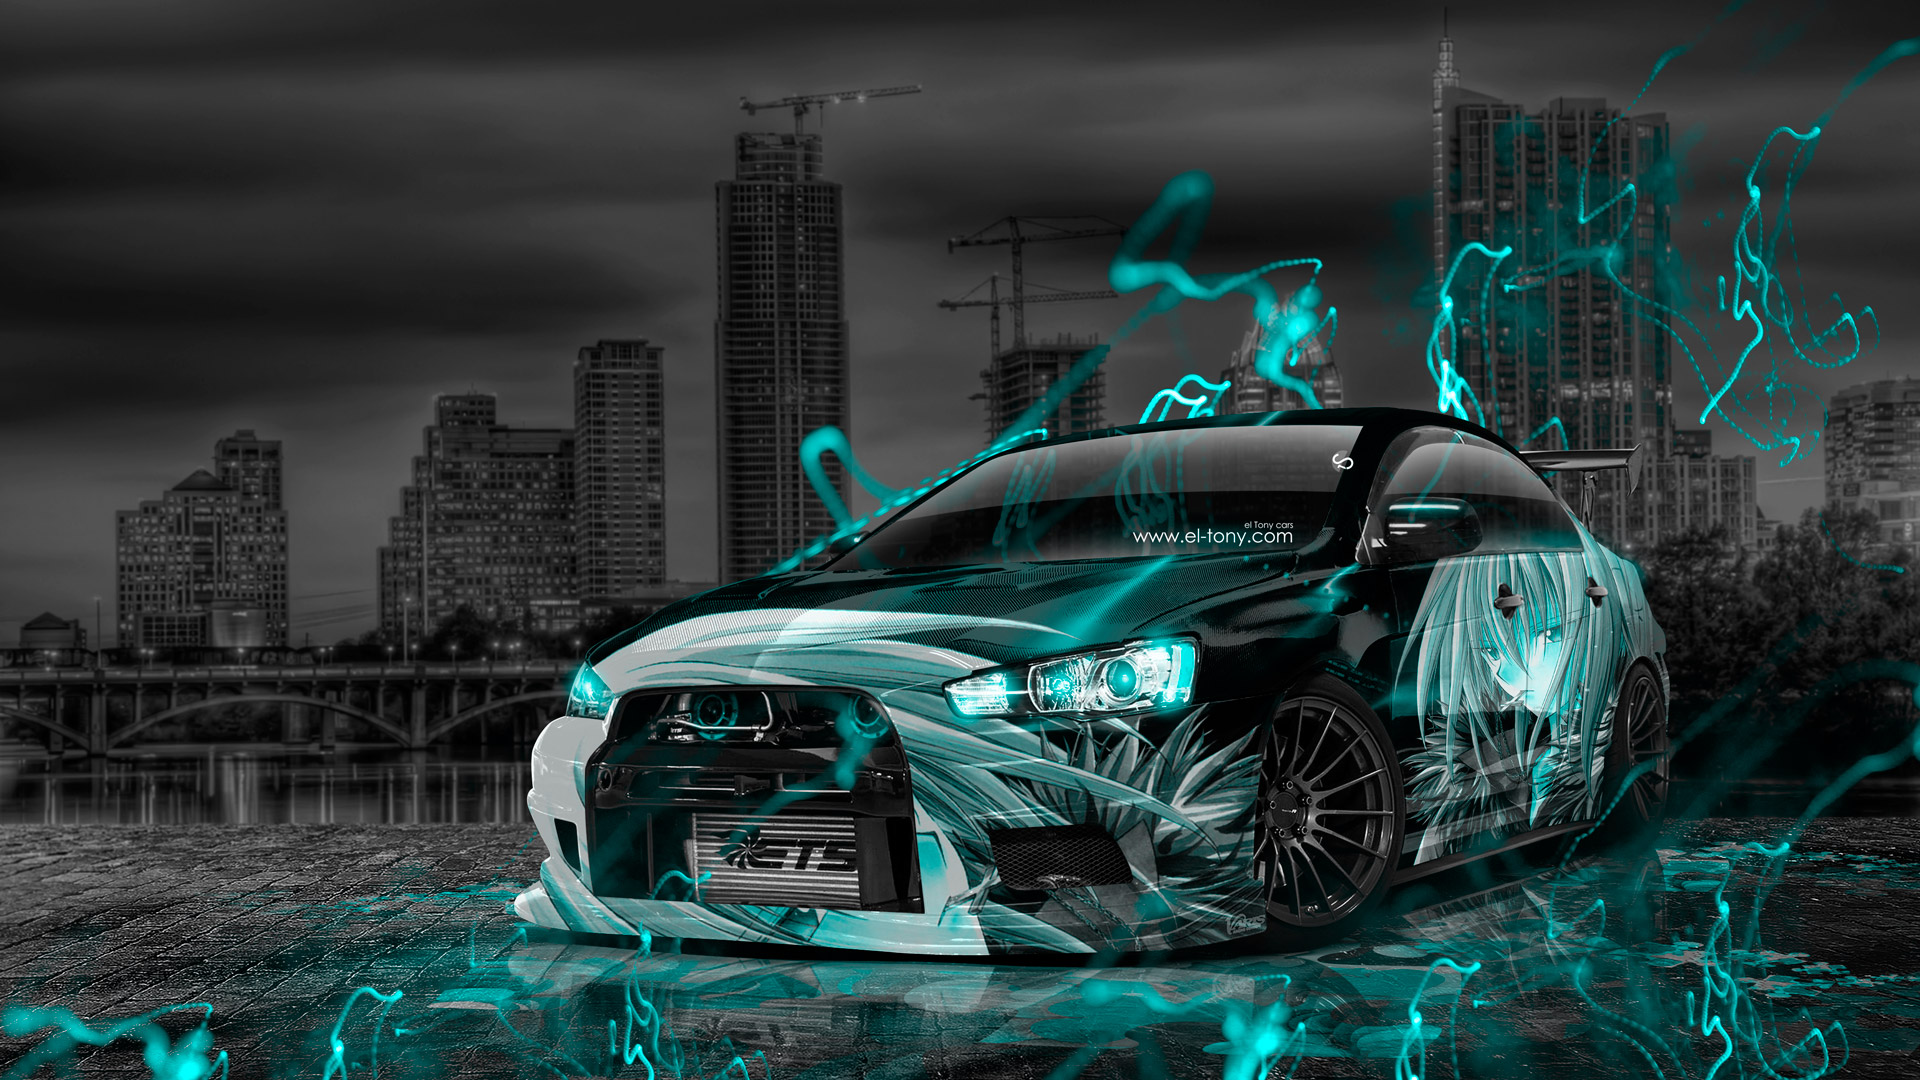 Mitsubishi-Lancer-Evolution-X-Tuning-JDM-Anime-Boy-Aerography-City-Car-2015-Azure-Neon-Effects-HD-Wallpapers-design-by-Tony-Kokhan-[www.el-tony.com]